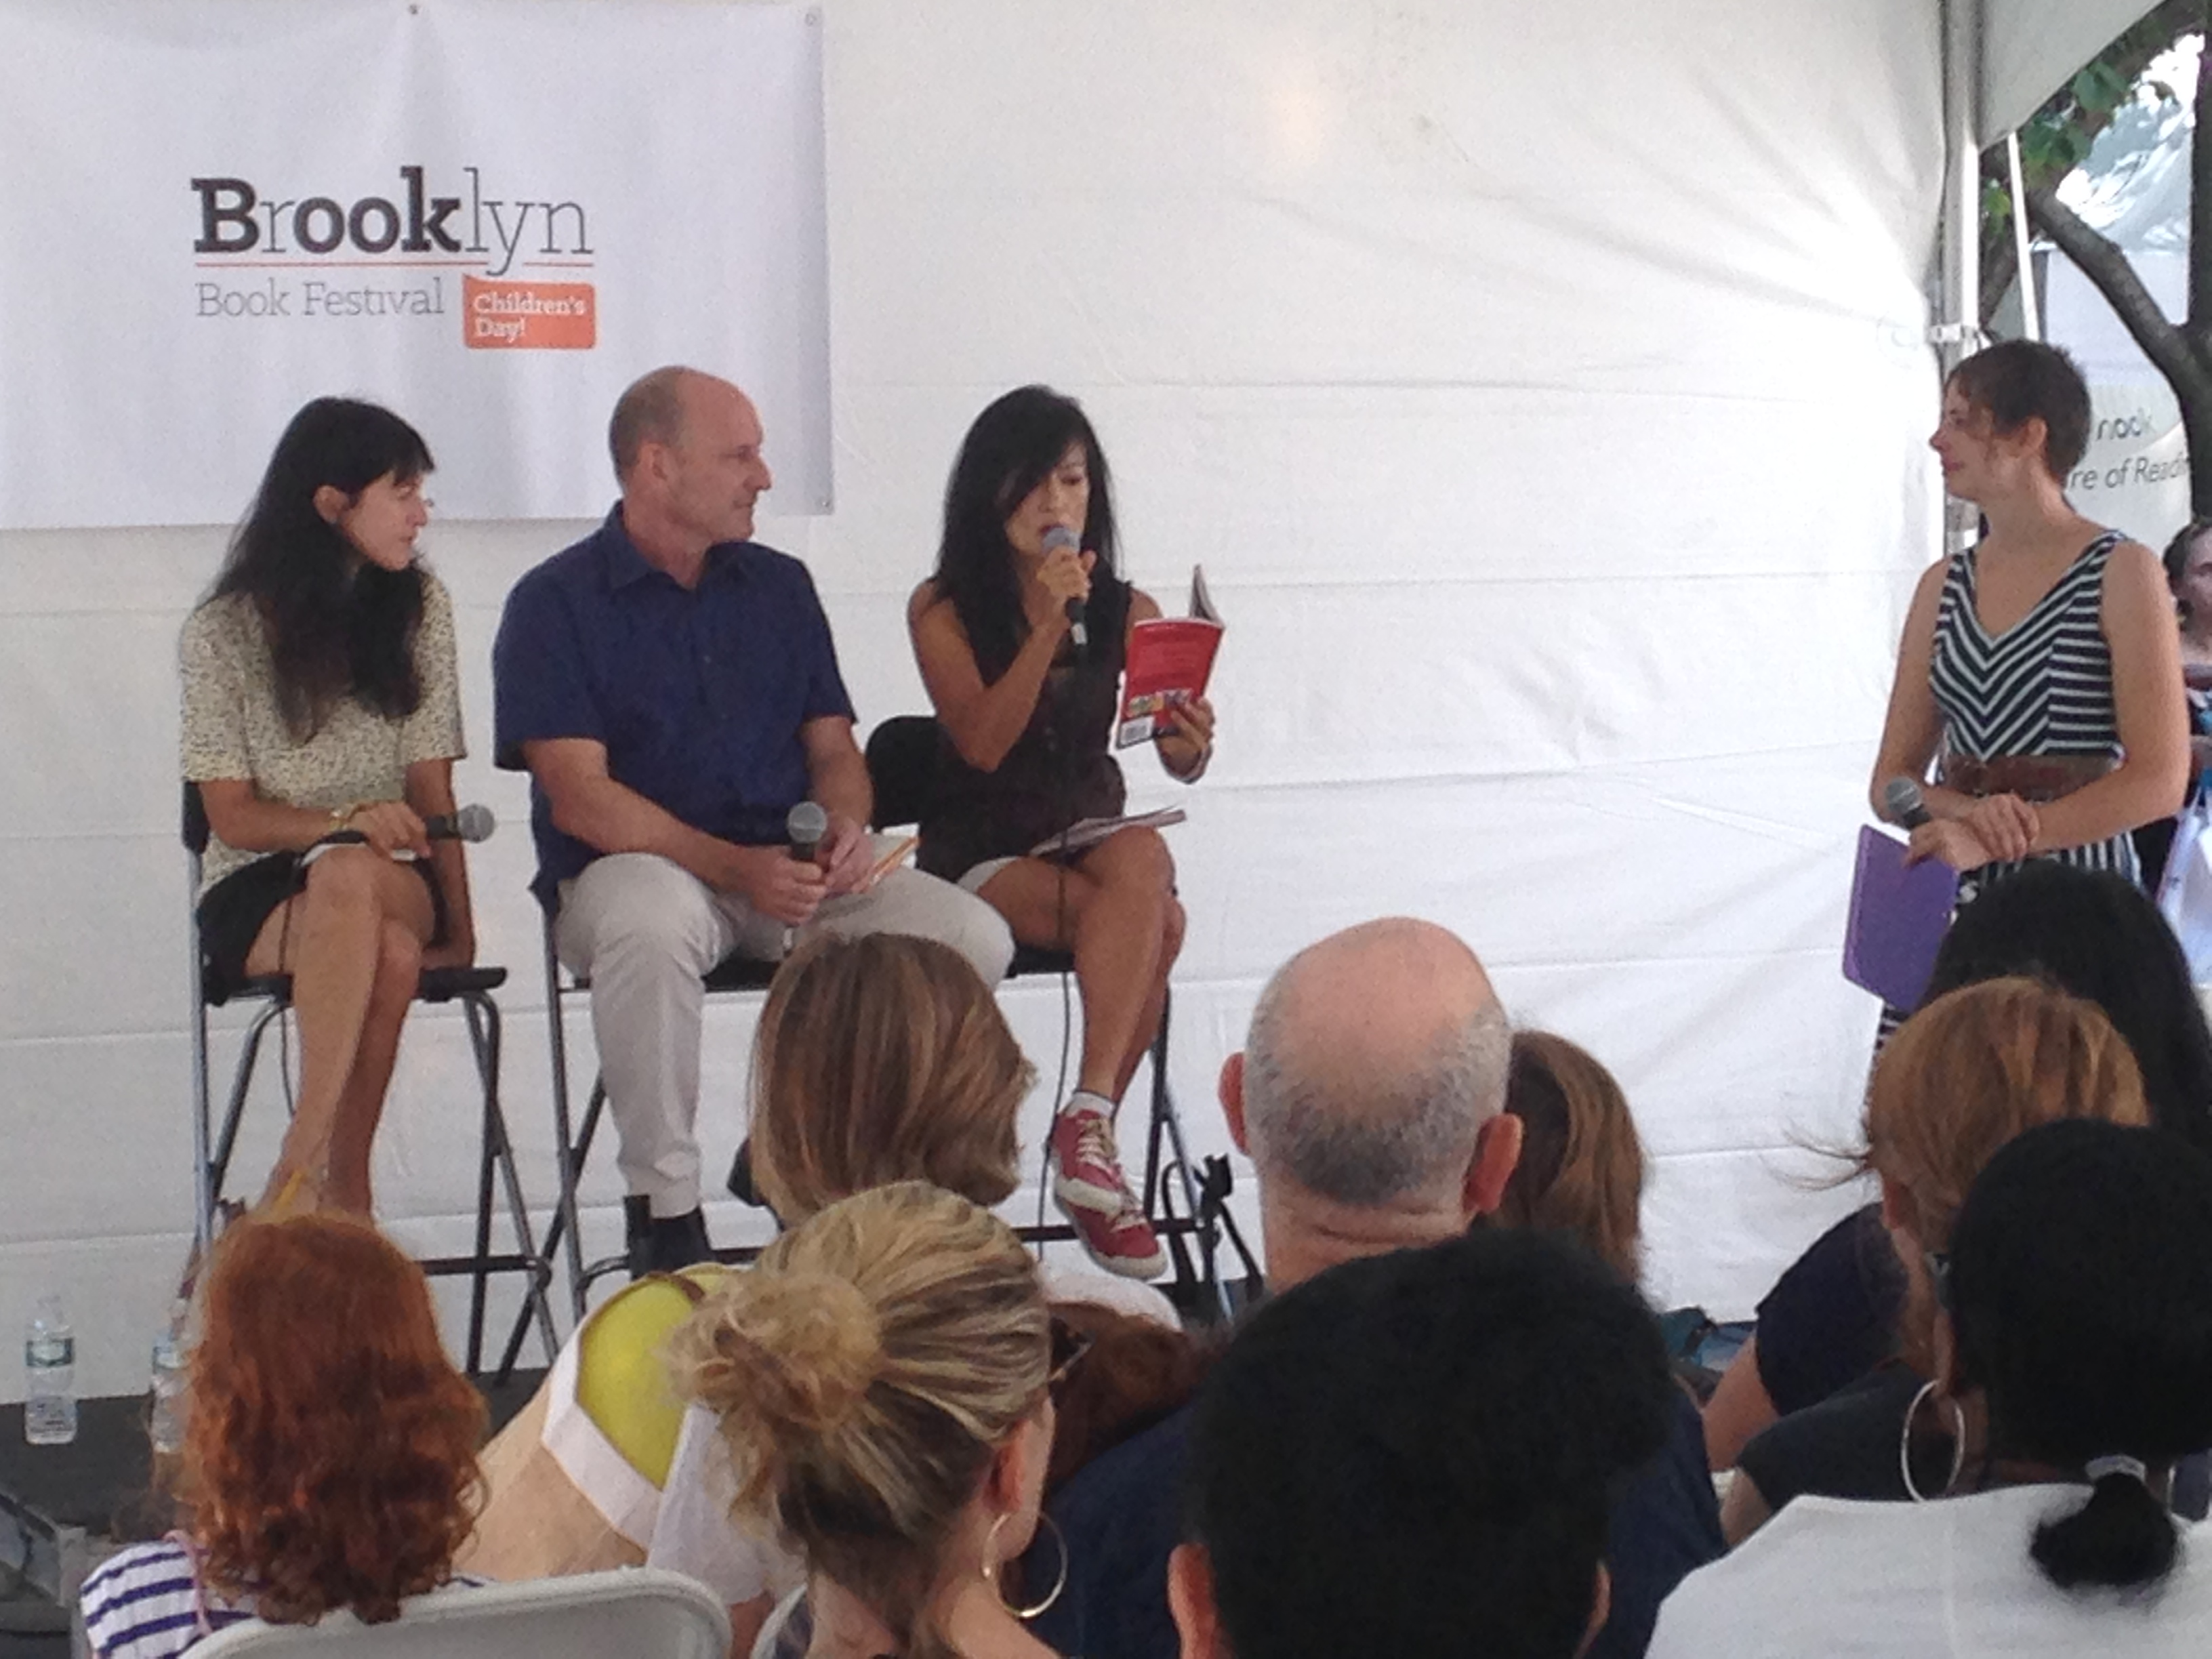 Brooklyn Book Festival Fosters Creativity Among Young Readers and Writers